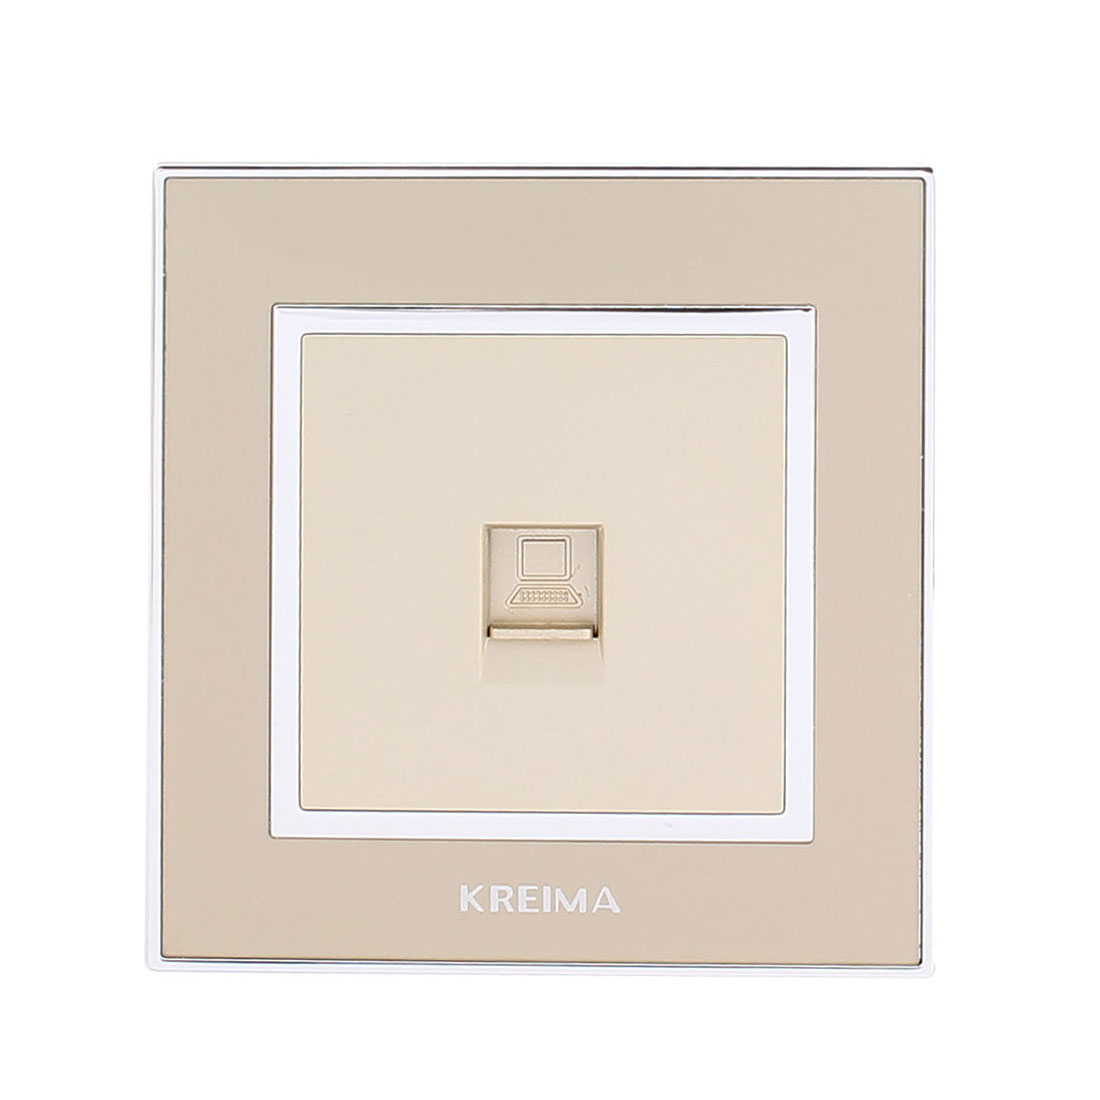 Computer PC RJ45 8P8C Network Outlet Wall Socket Panel Plate Gold Tone